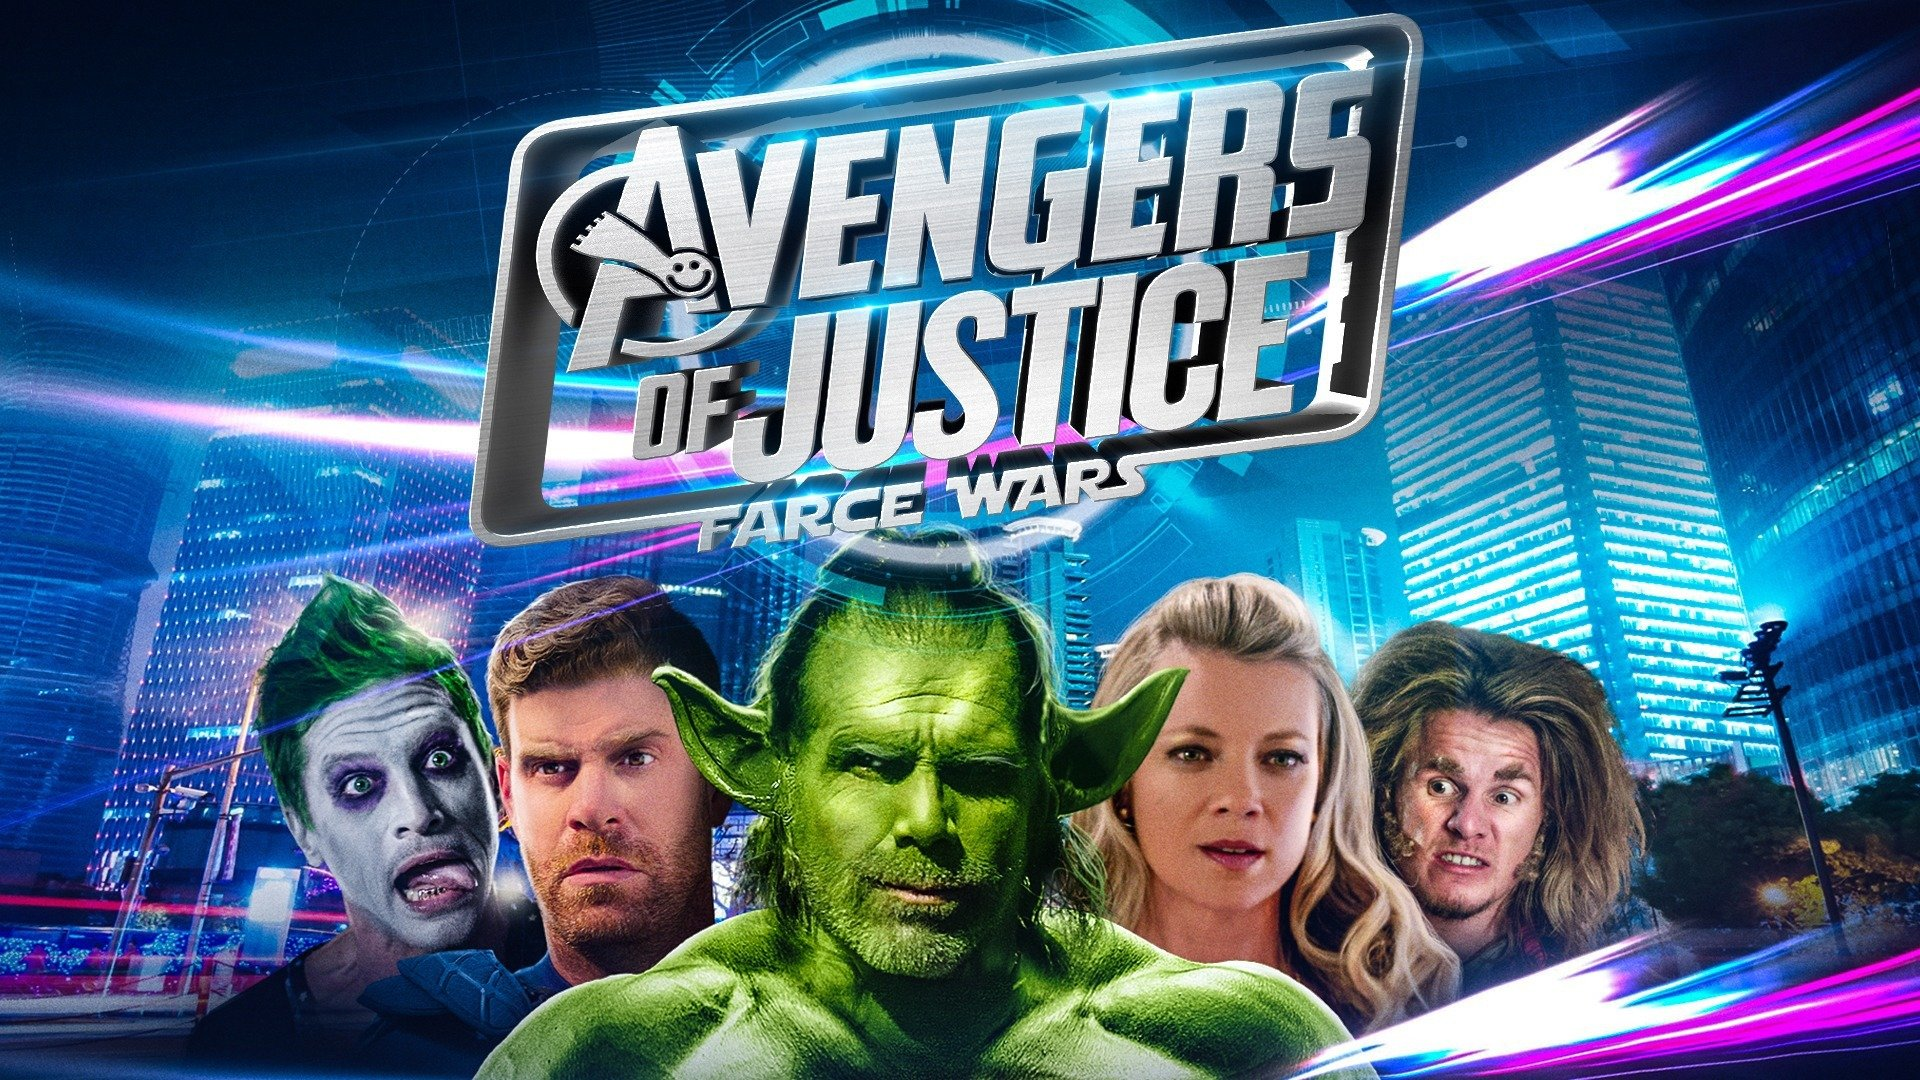 Avengers of Justice: Farce Wars | MovieTickets